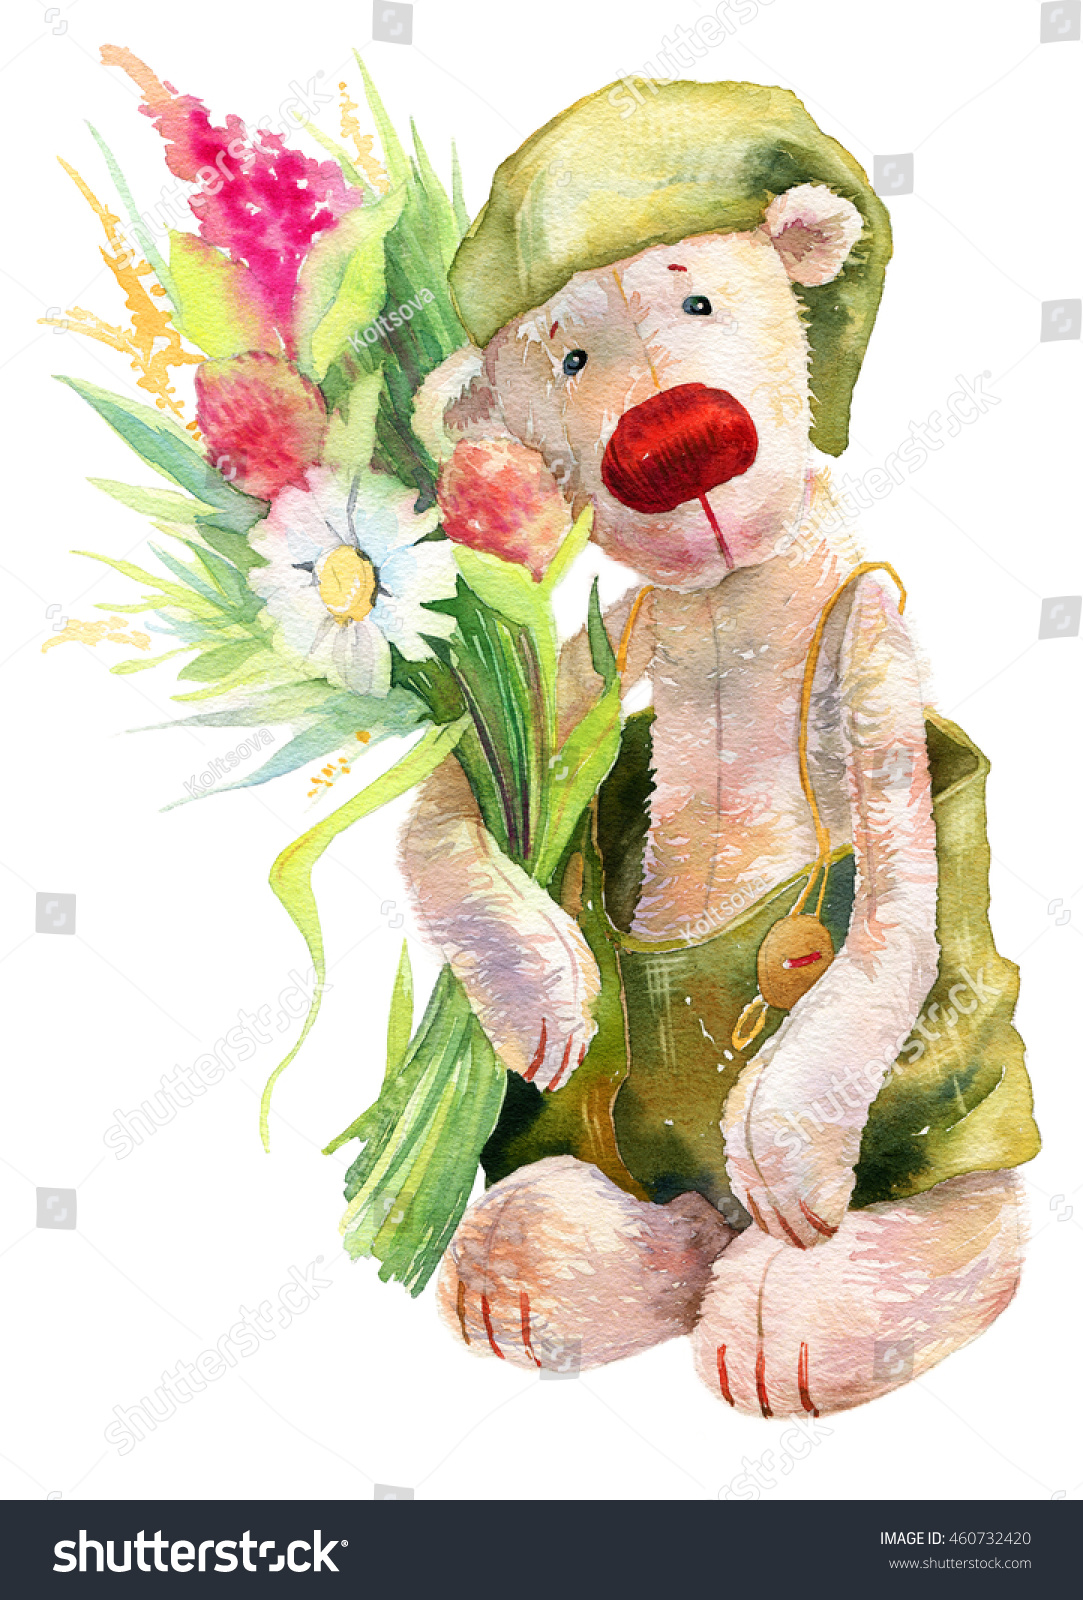 Cute watercolor teddy bear flowers kid stock illustration 460732420 cute watercolor teddy bear with flowers for kid birthday background izmirmasajfo